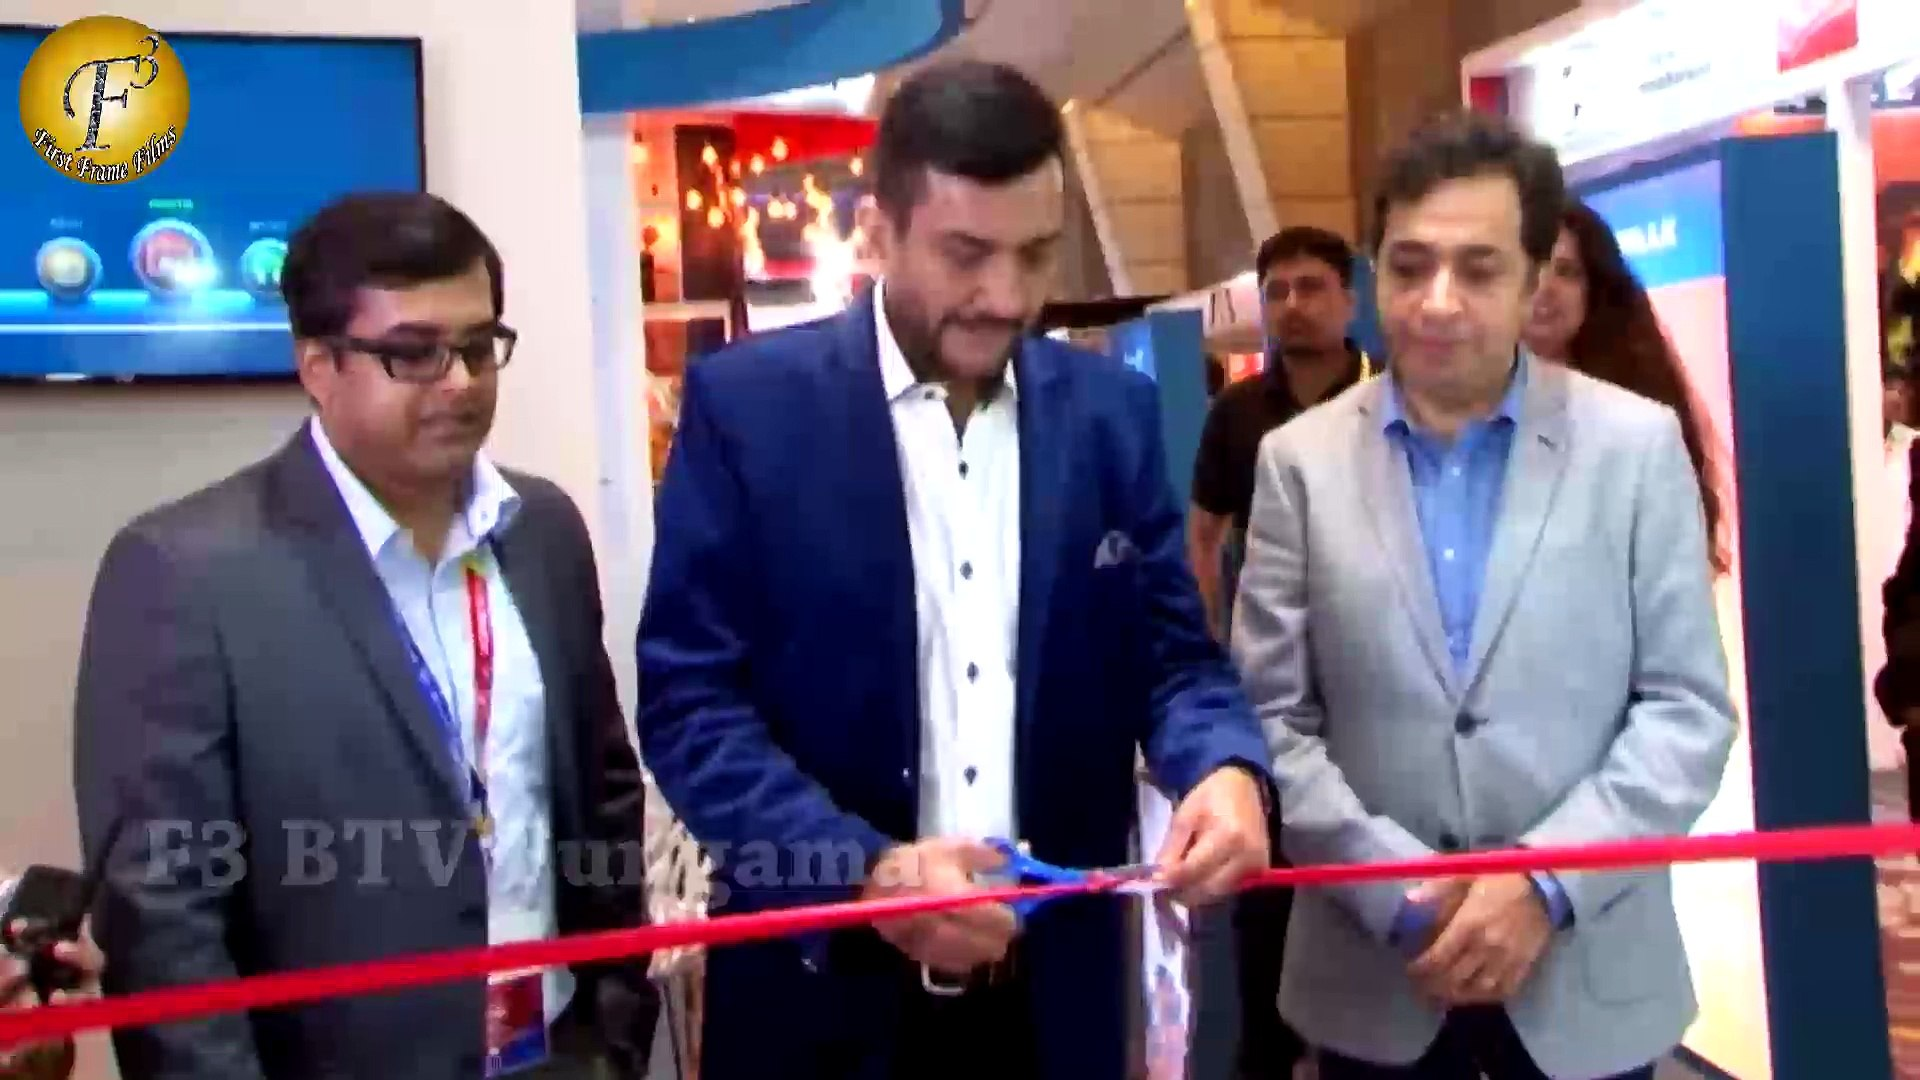 Tapsee Pannu attend India Licensing Expo 2017 | Sanjeev Kapoor